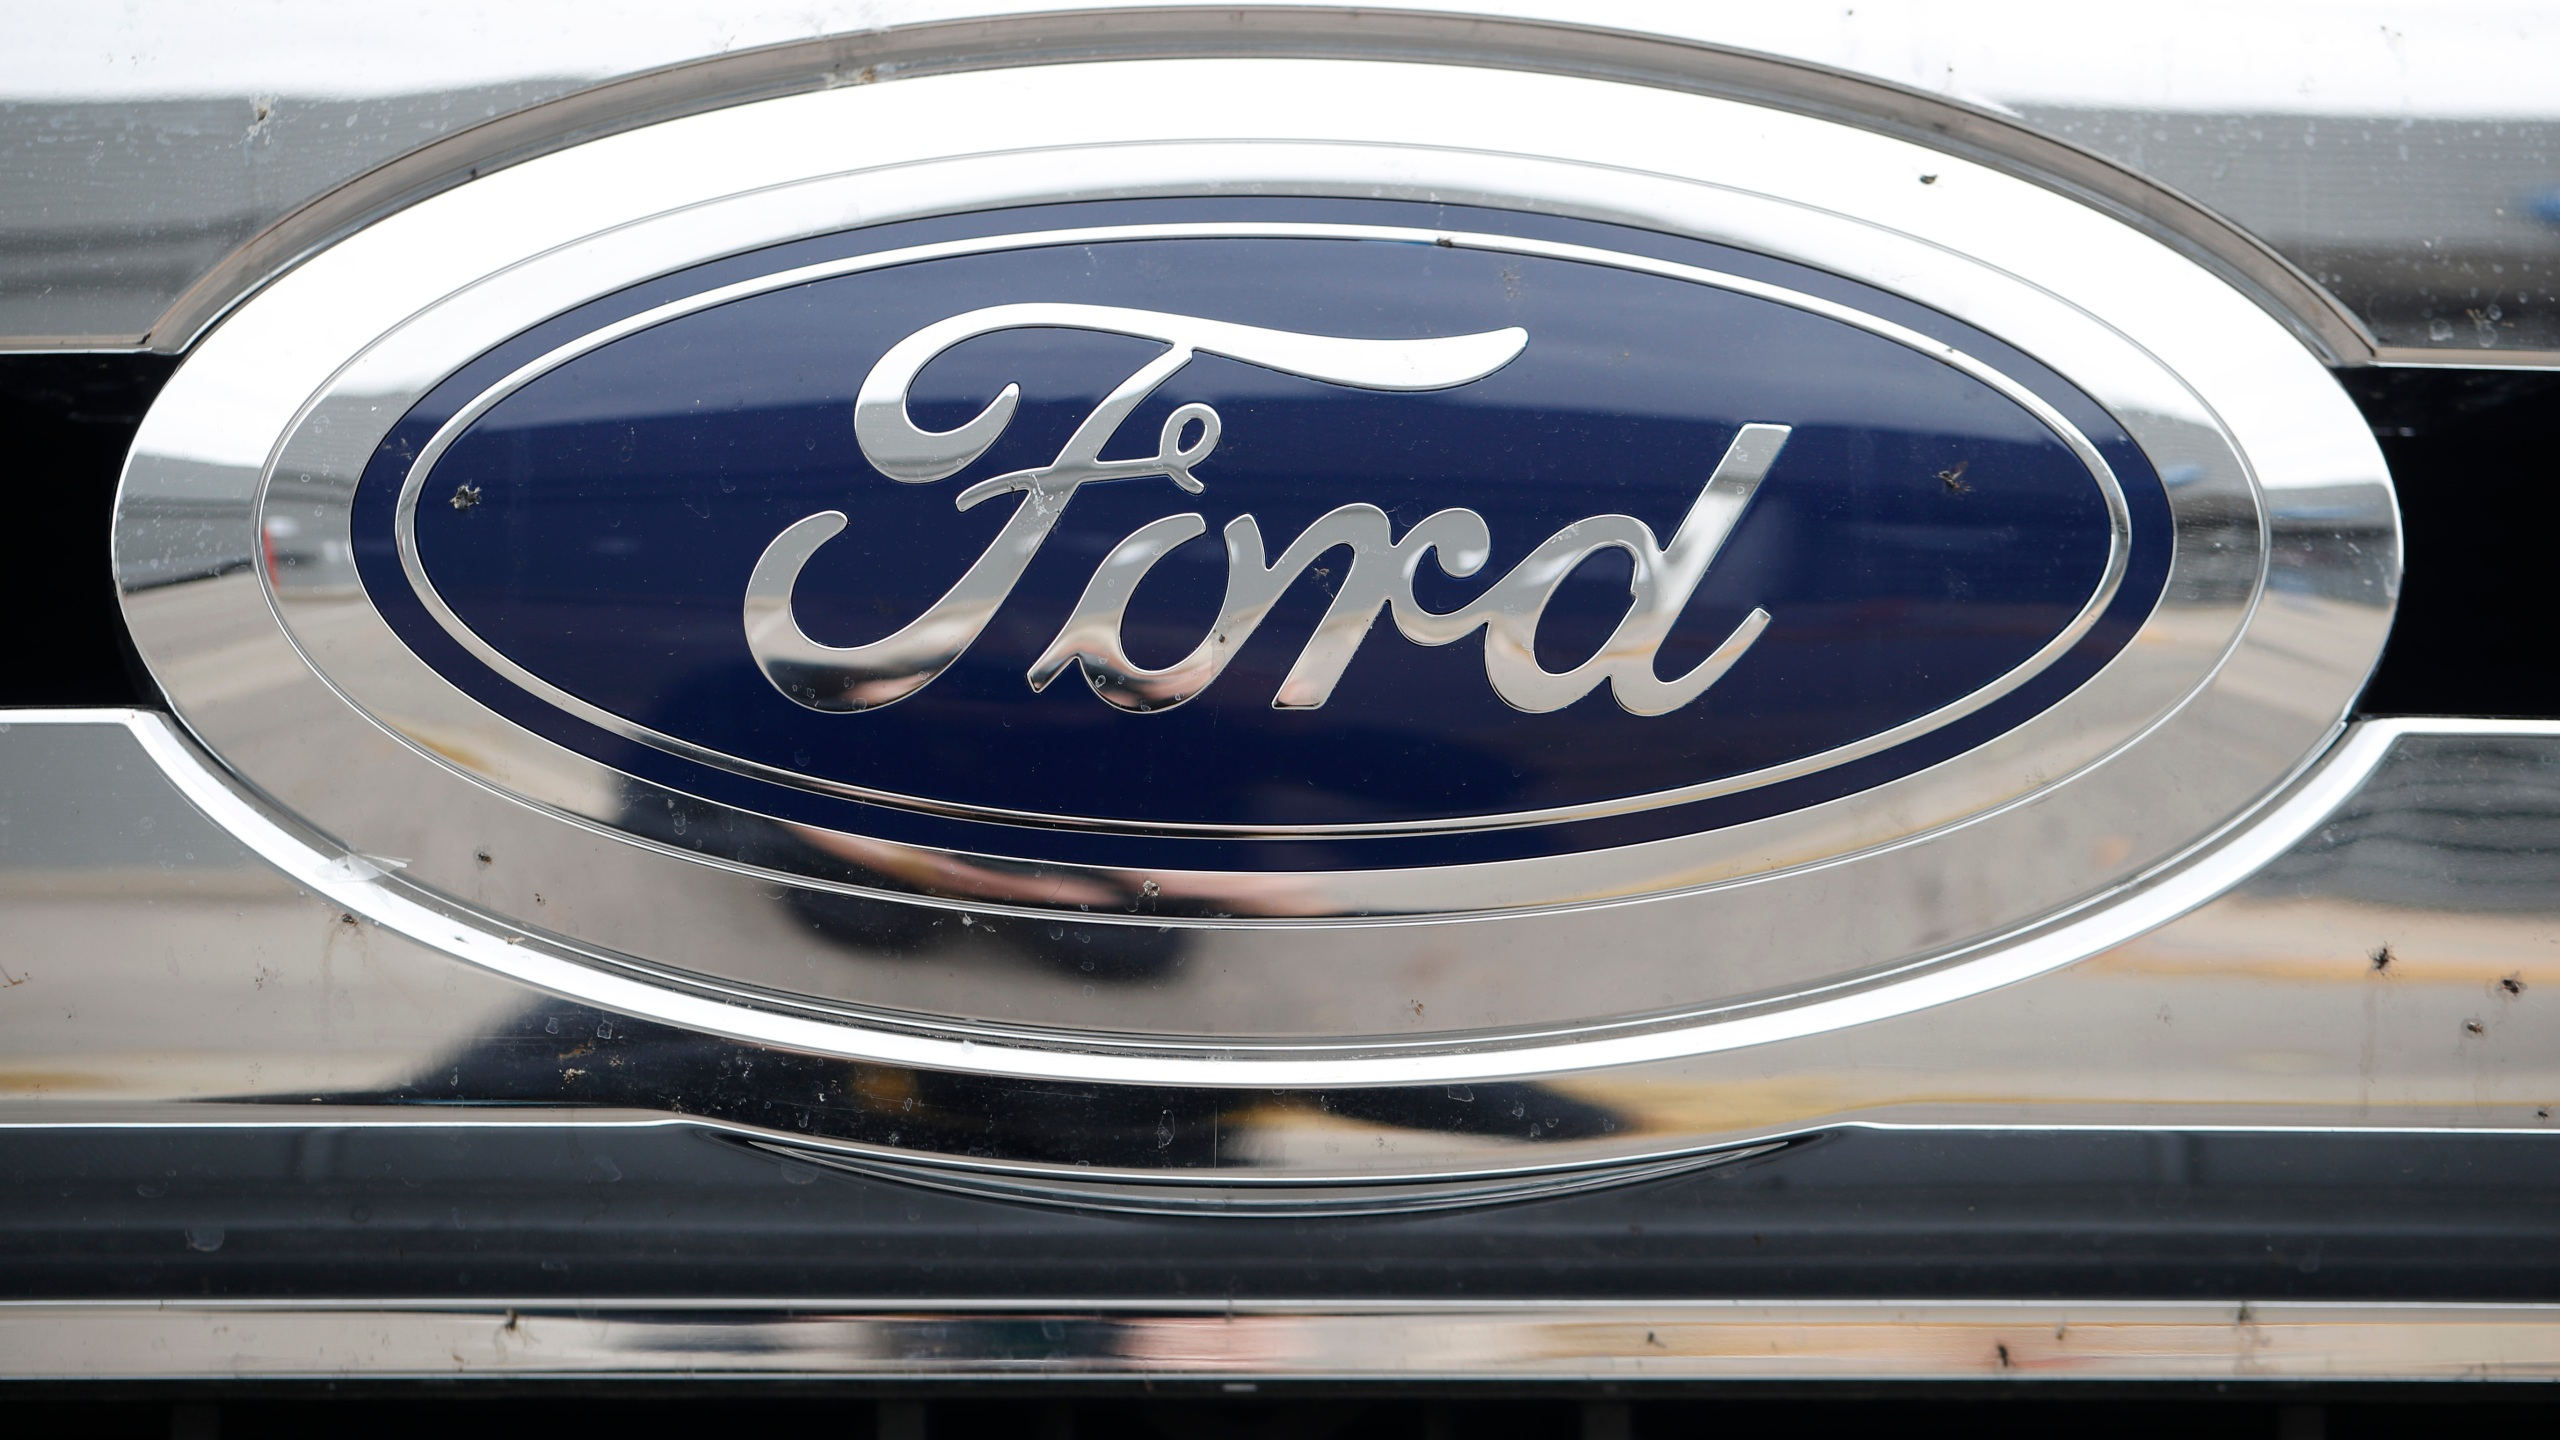 2019 Ford logo on F-250 pickup truck, r m